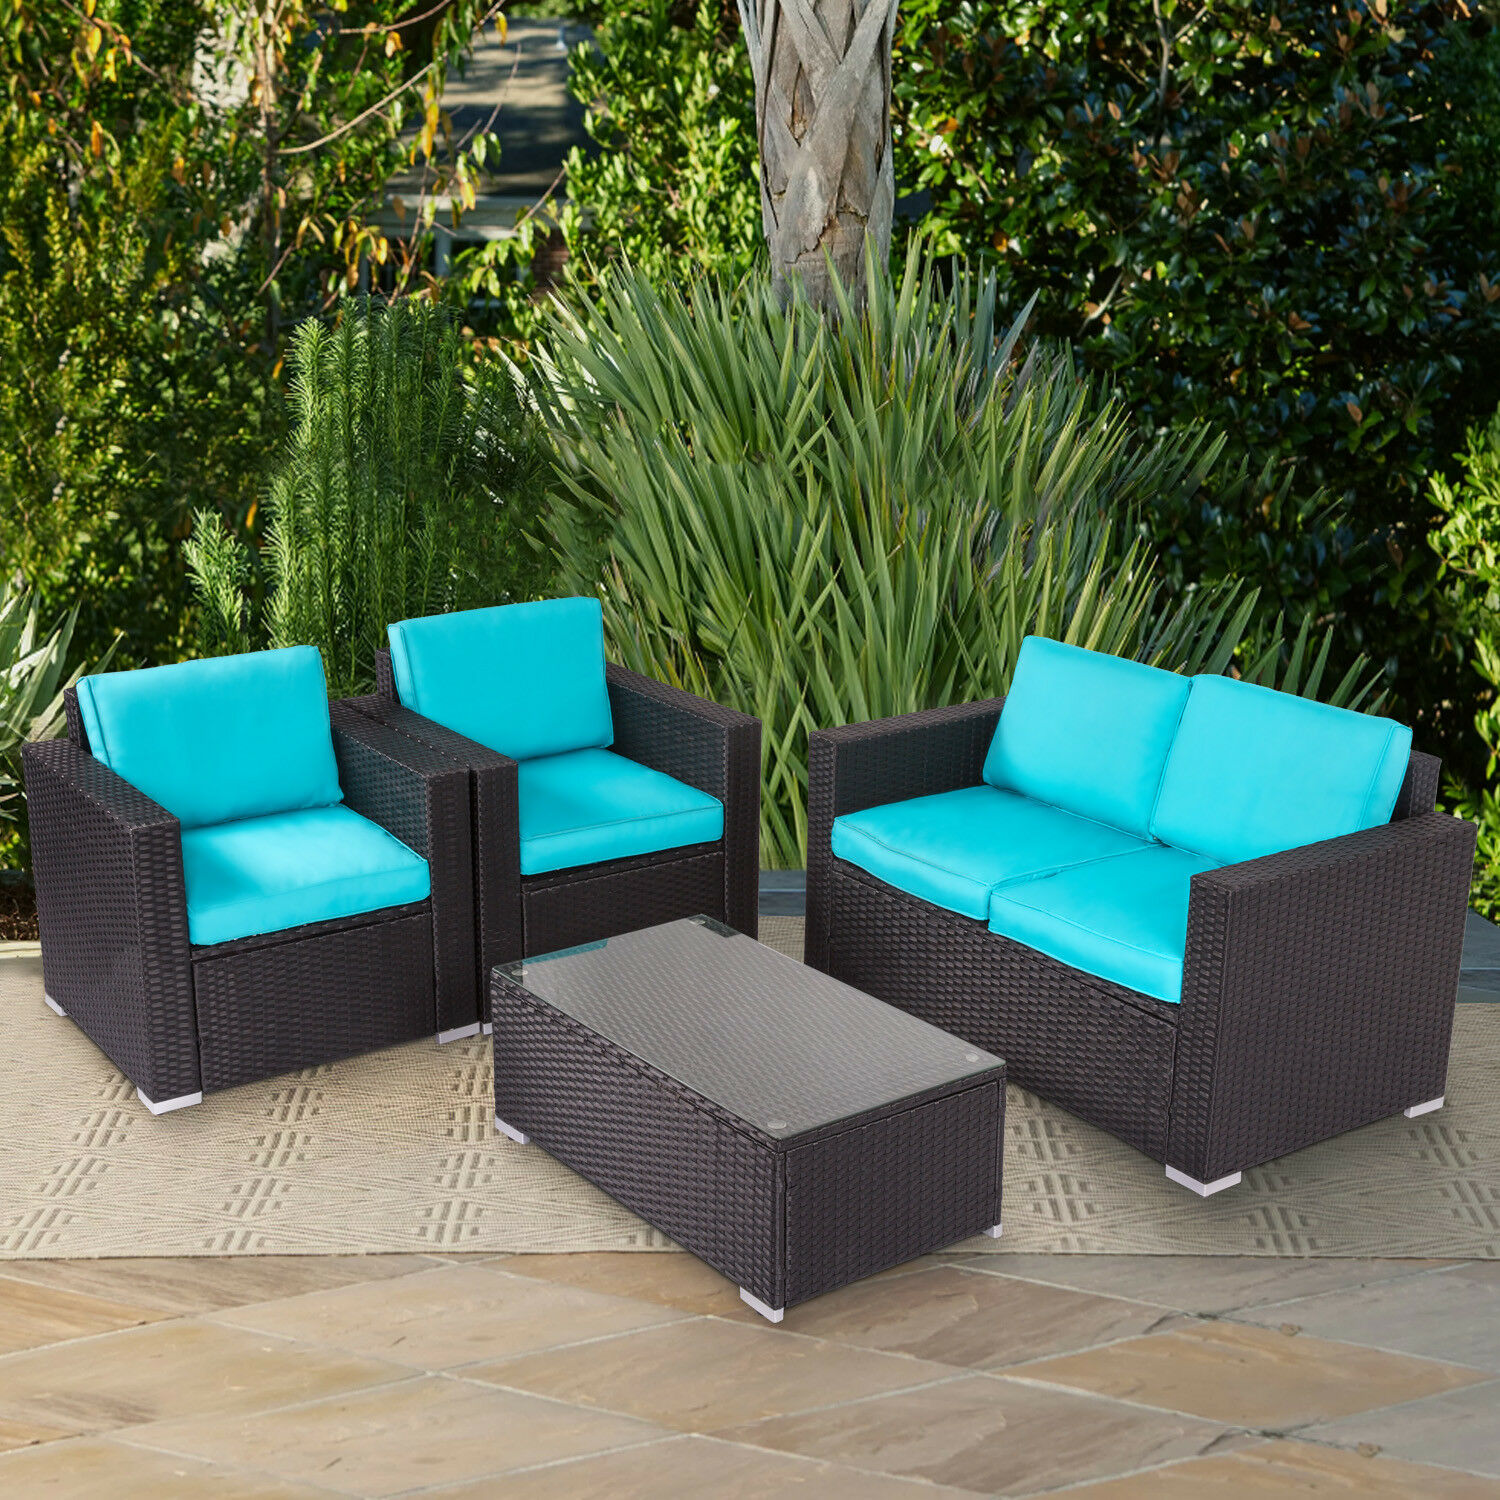 Garden Furniture - 4PCs Rattan Garden Furniture Patio Sofa and Table Set All Weather w/ Cushions